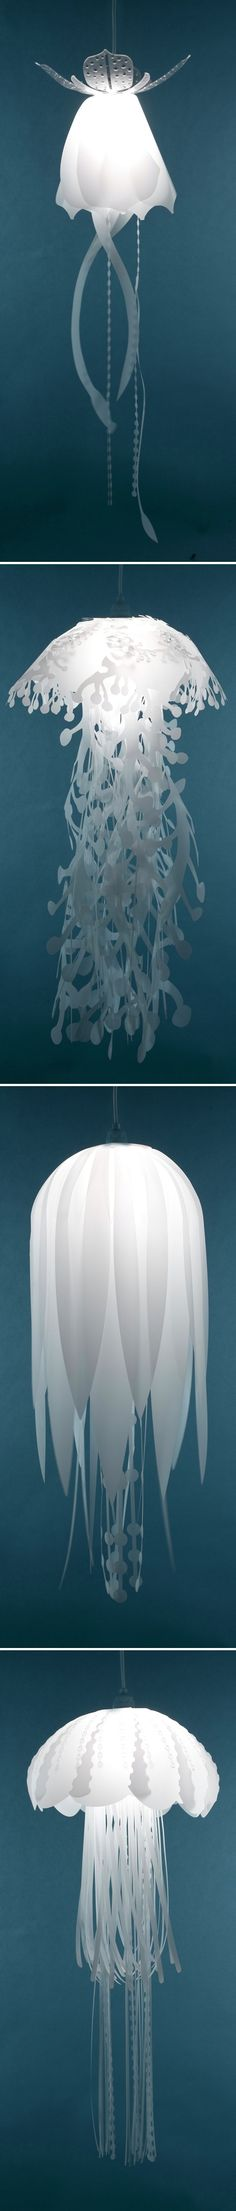 Jelly Fish Hanging Lamps  I had a sea themed bathroom when I was younger. These would have been so cool I. It